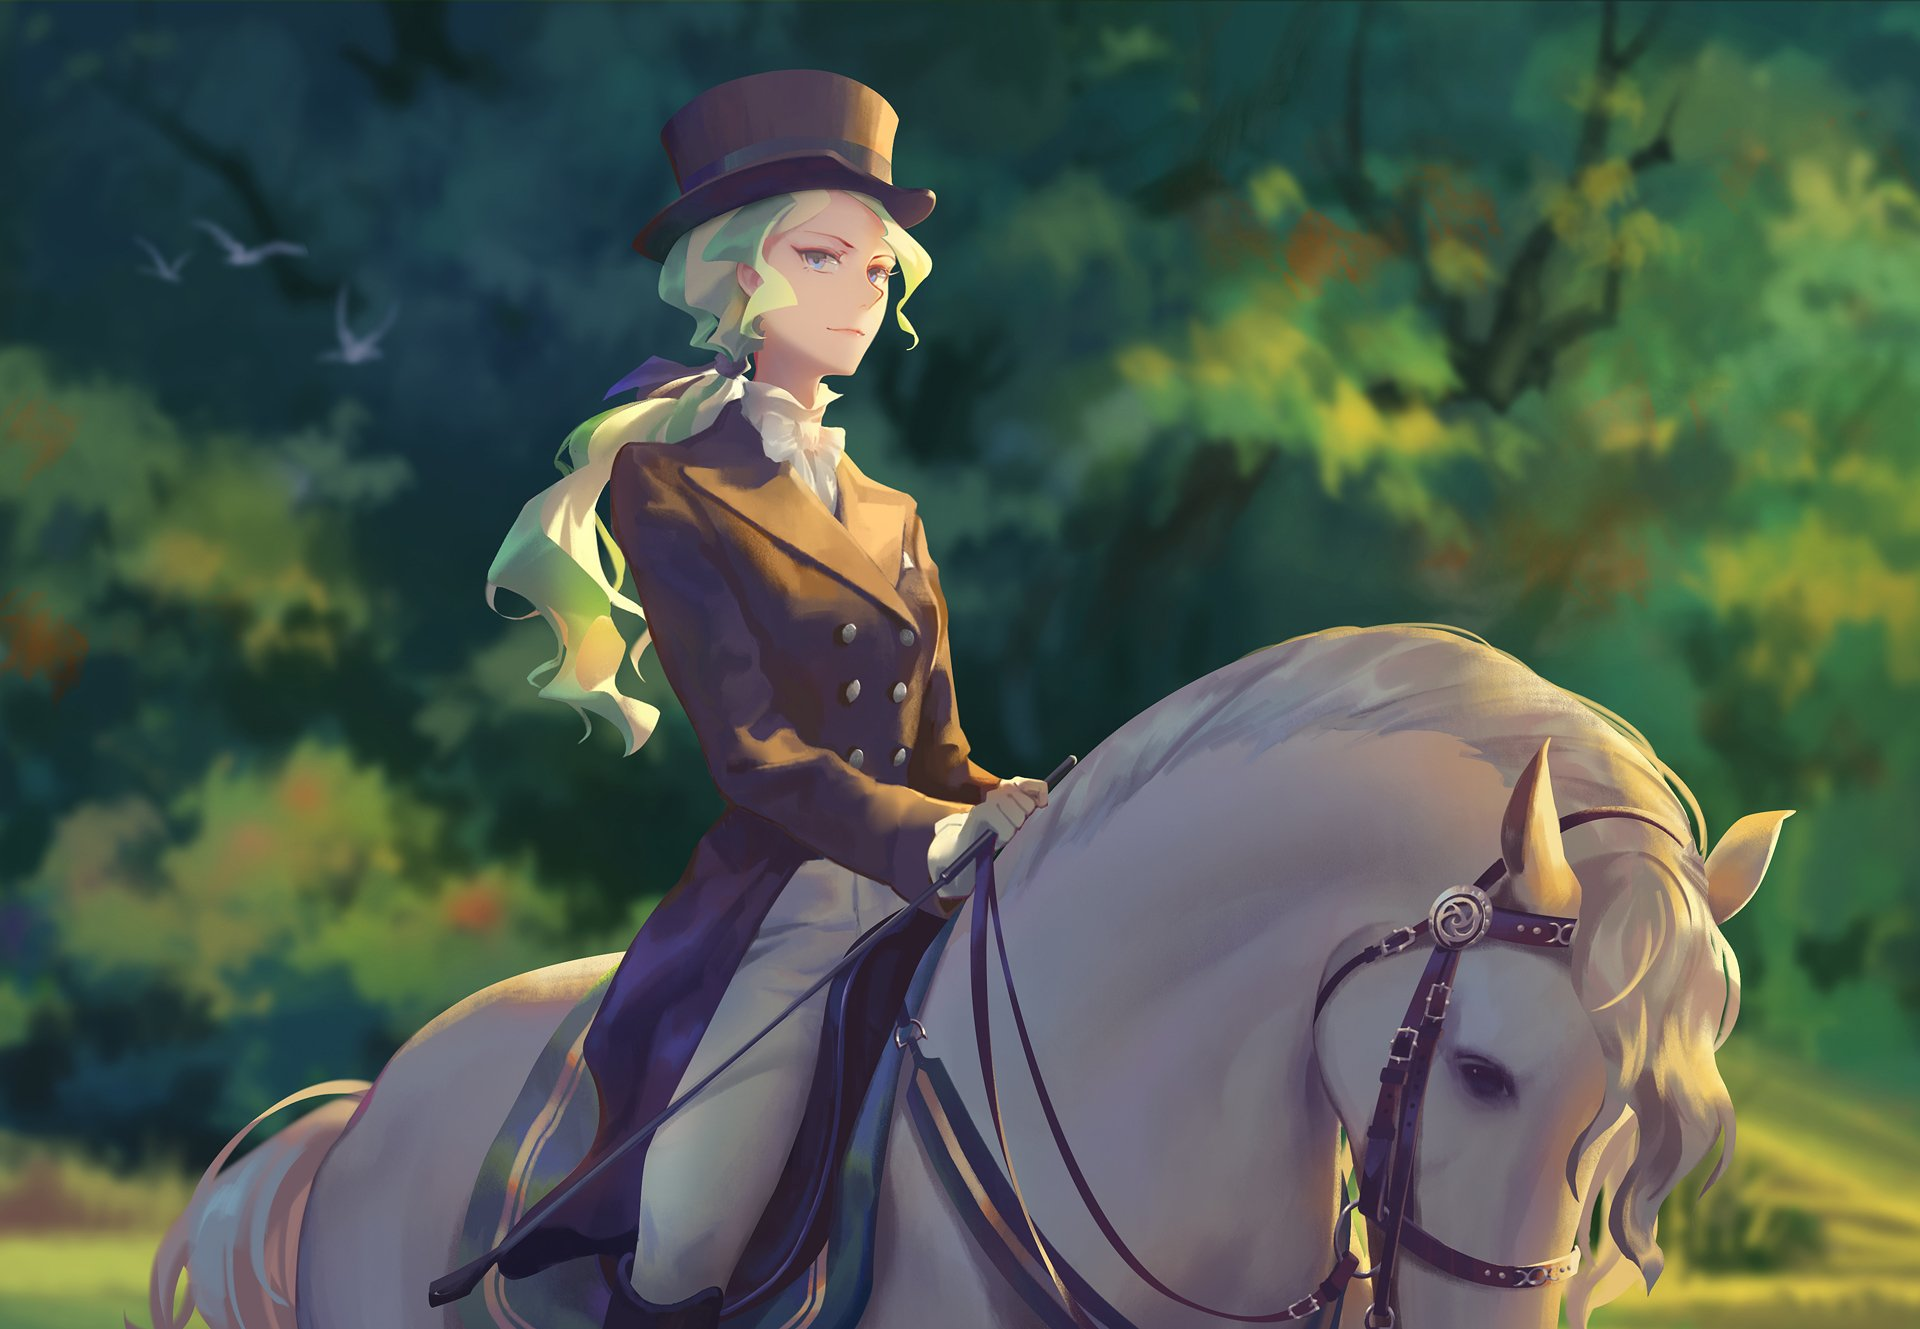 Anime - Little Witch Academia  Green Hair Hat Girl Diana Cavendish Blue Eyes Horse Wallpaper